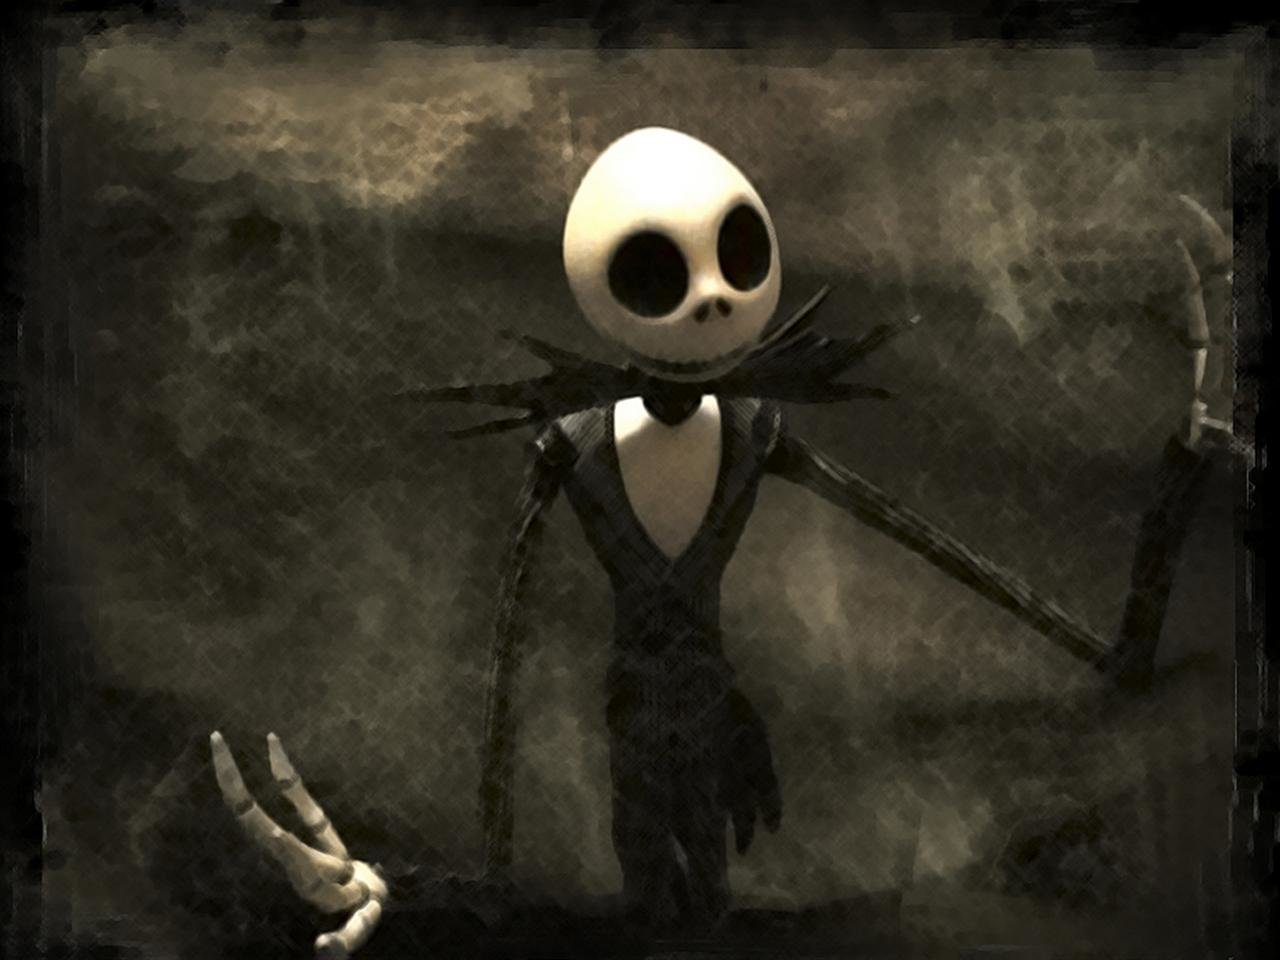 Download hd 1280x960 The Nightmare Before Christmas PC wallpaper ID:227220 for free